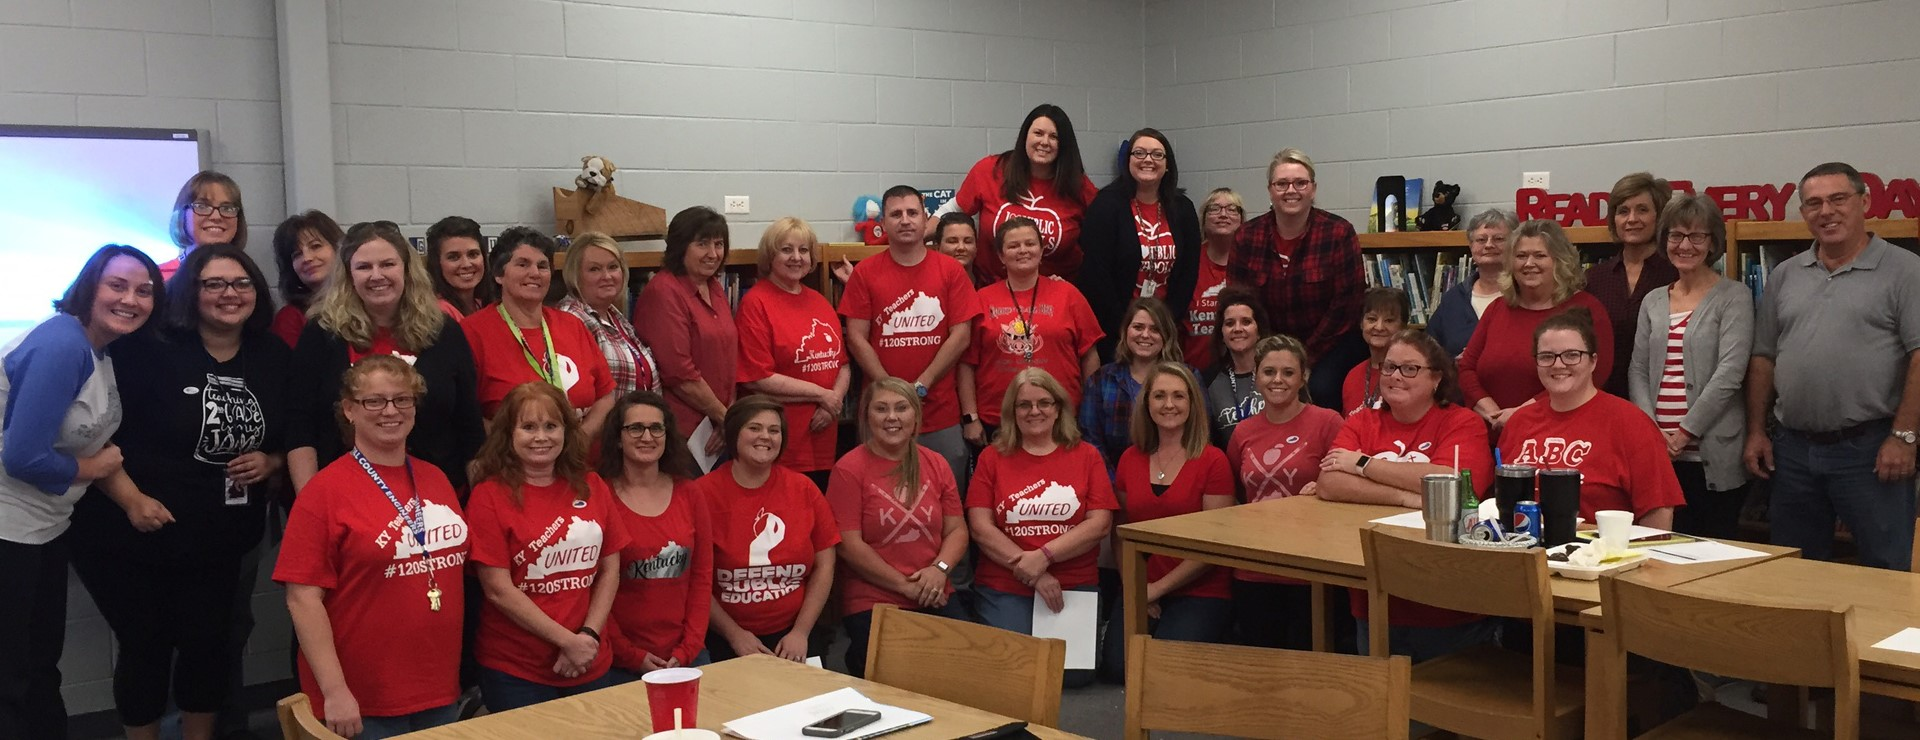 Staff wearing red in support of public education.